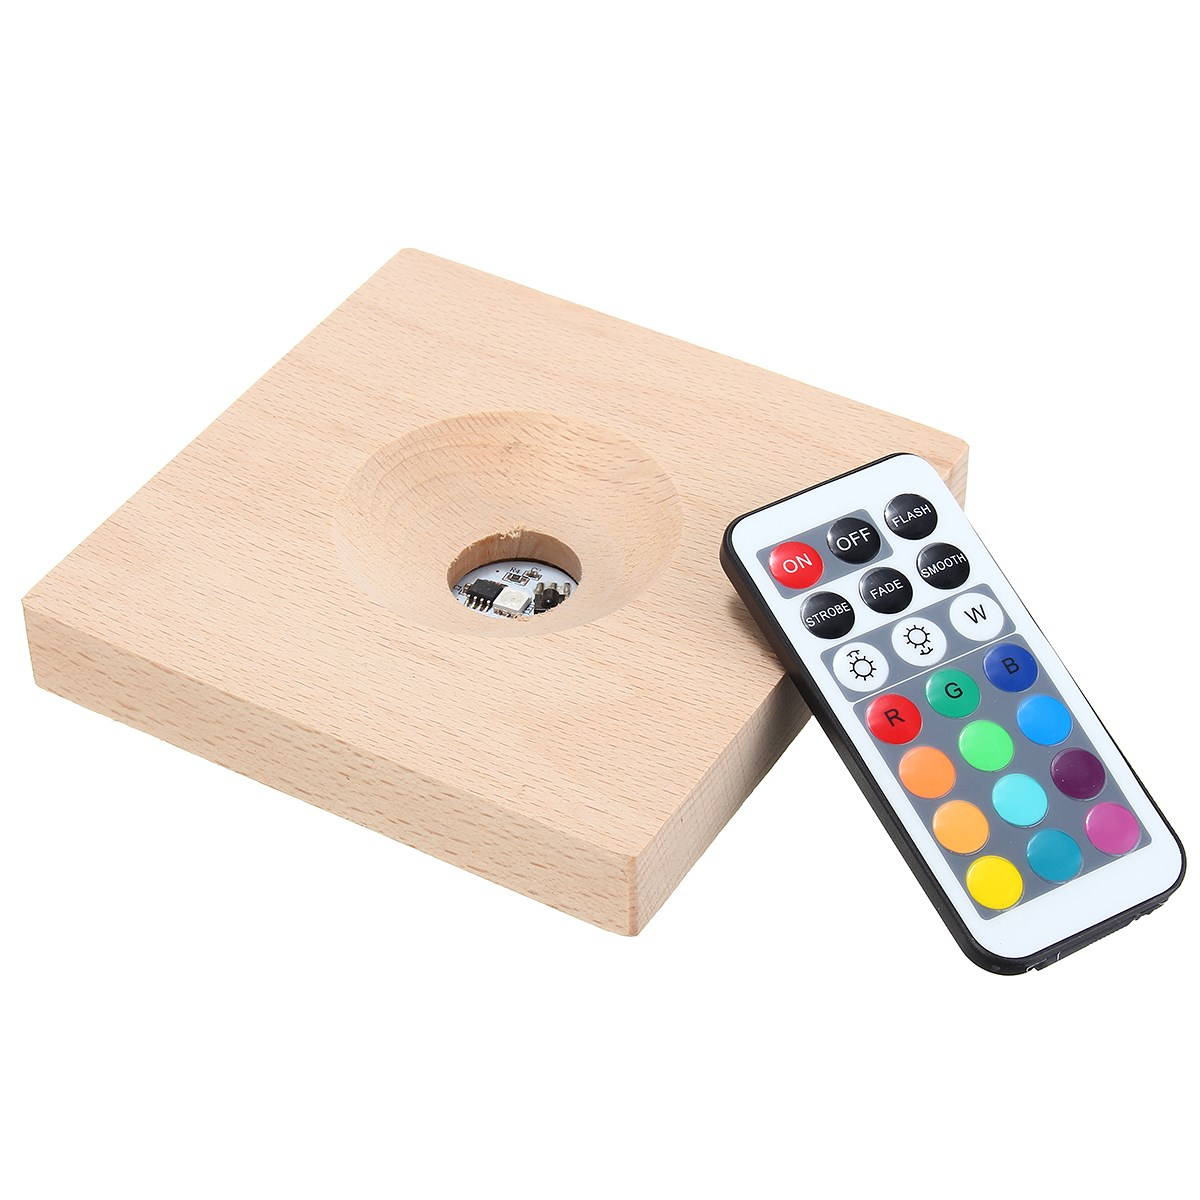 Multicolor RGB LED Night Light Lamp Light Emitting Socket Lamp Base Holder Solid Wood Lamp Holder With Remote Control DC3V 2017 hot led display space isolator recharge base remote control uv lamp vacuum cleaners